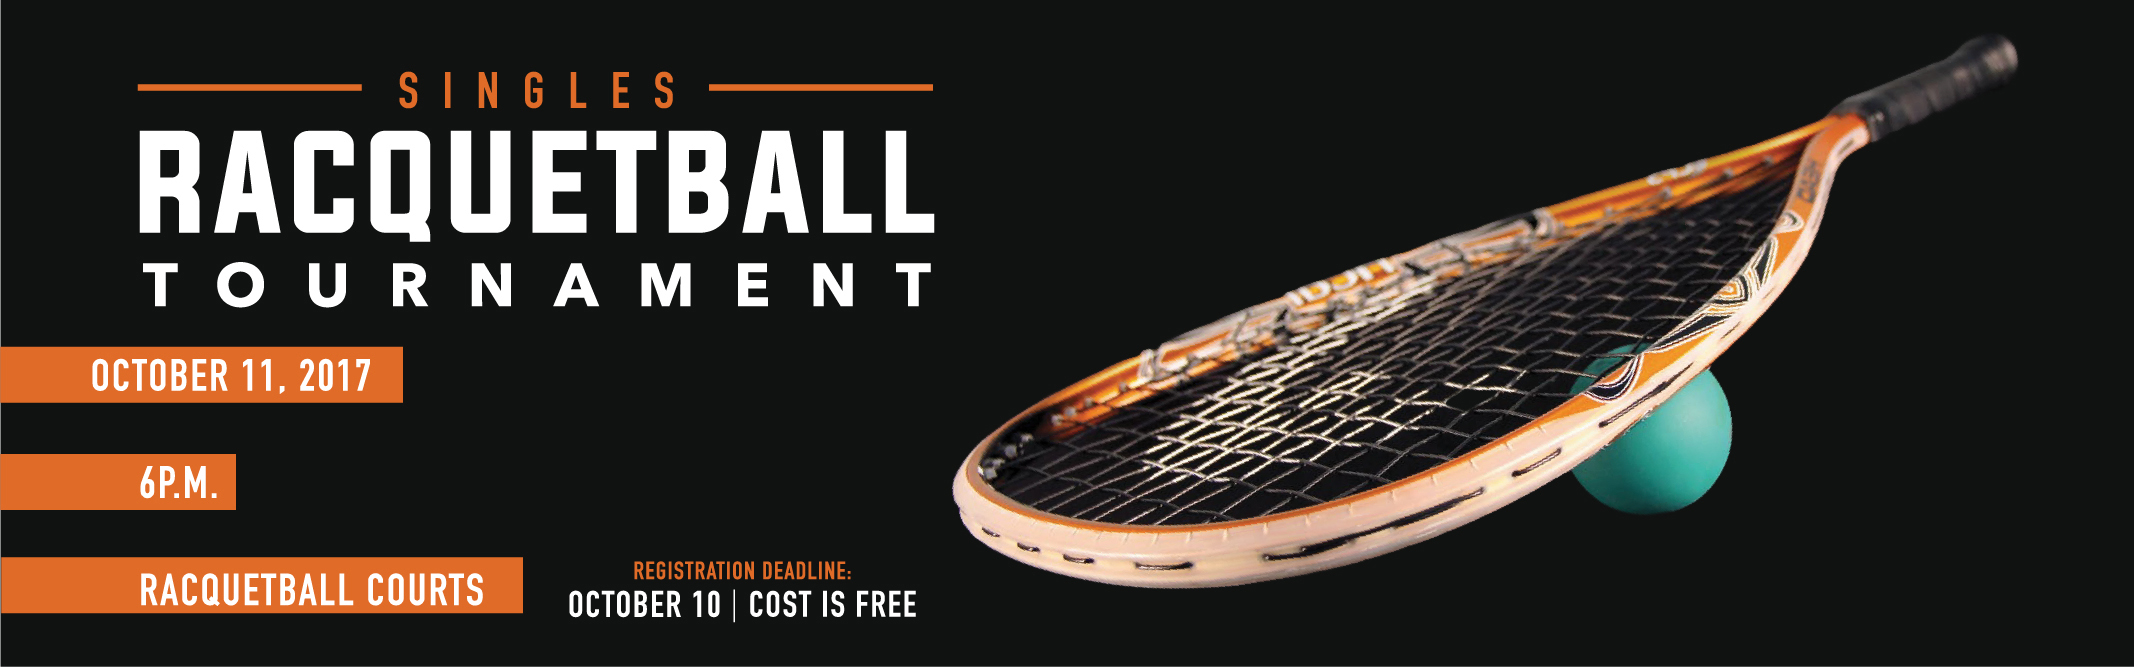 Tournaments for Racquetball court construction cost